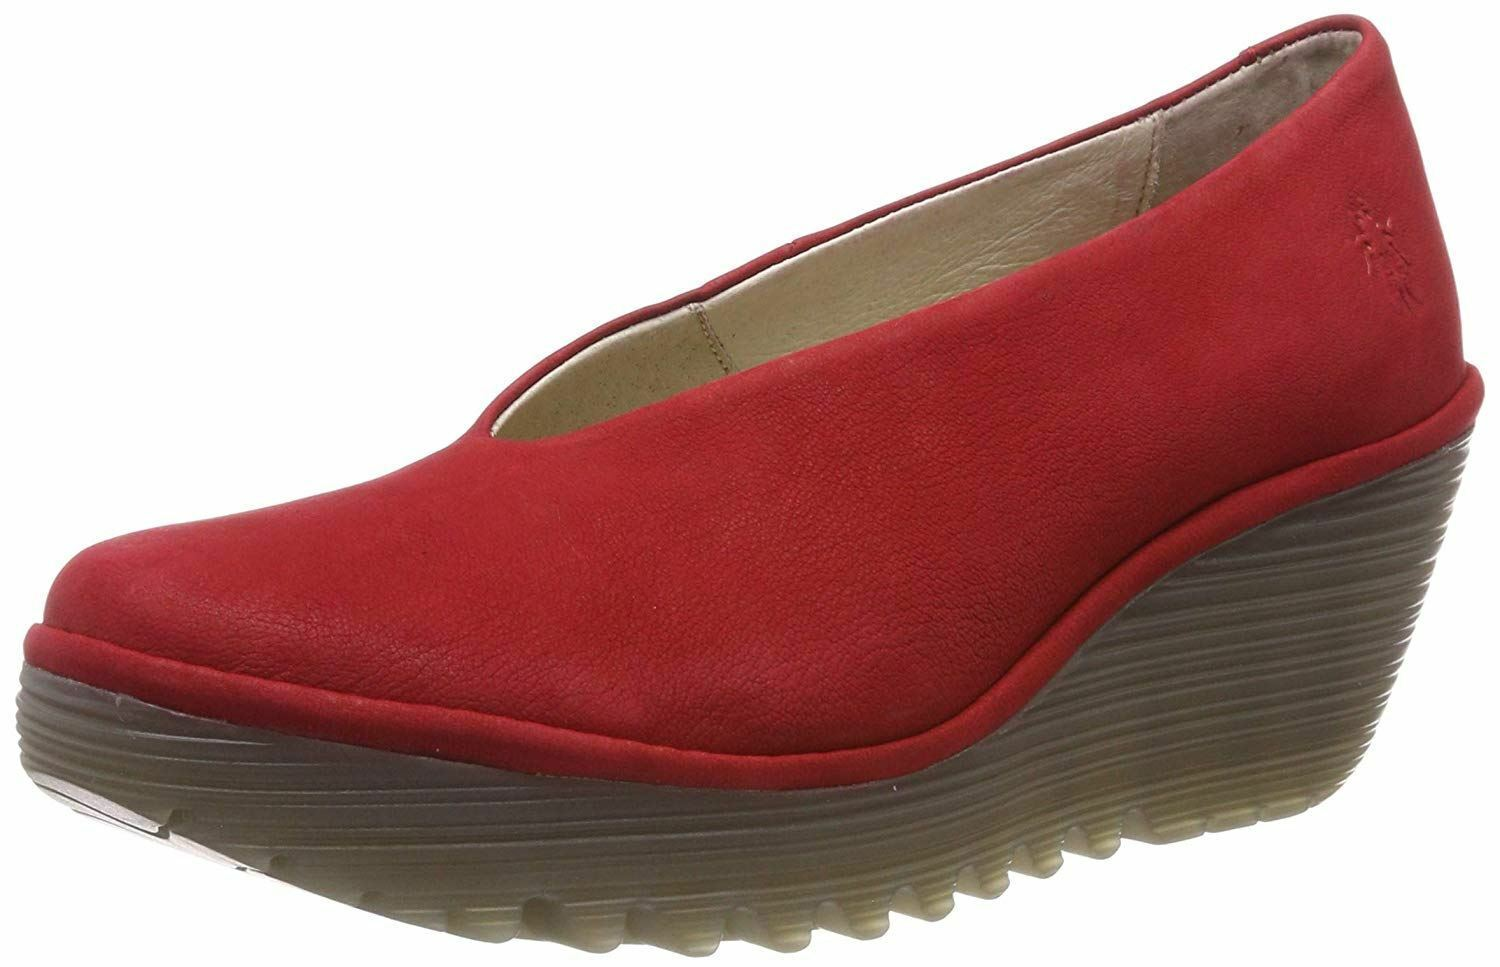 Fly London Yaz Red Leather Womens Wedge shoes